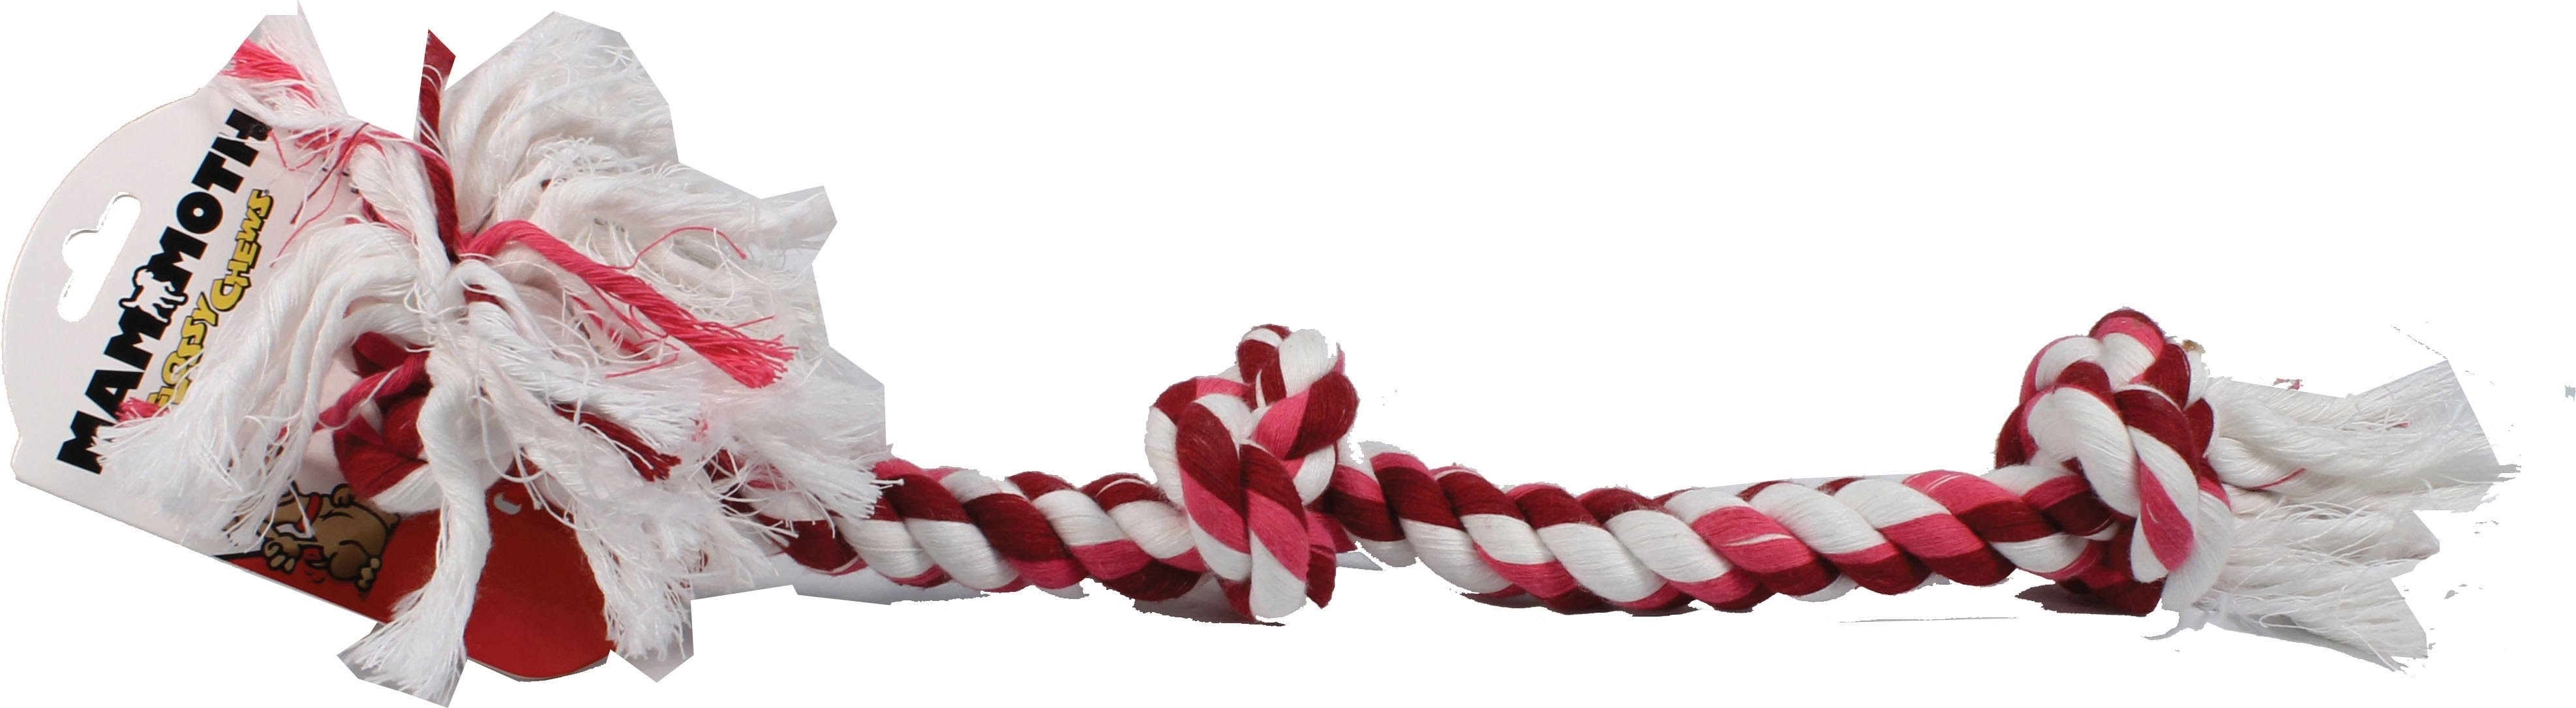 Flossy Chews Cottonblend Color 3-Knot Rope Tug - Large